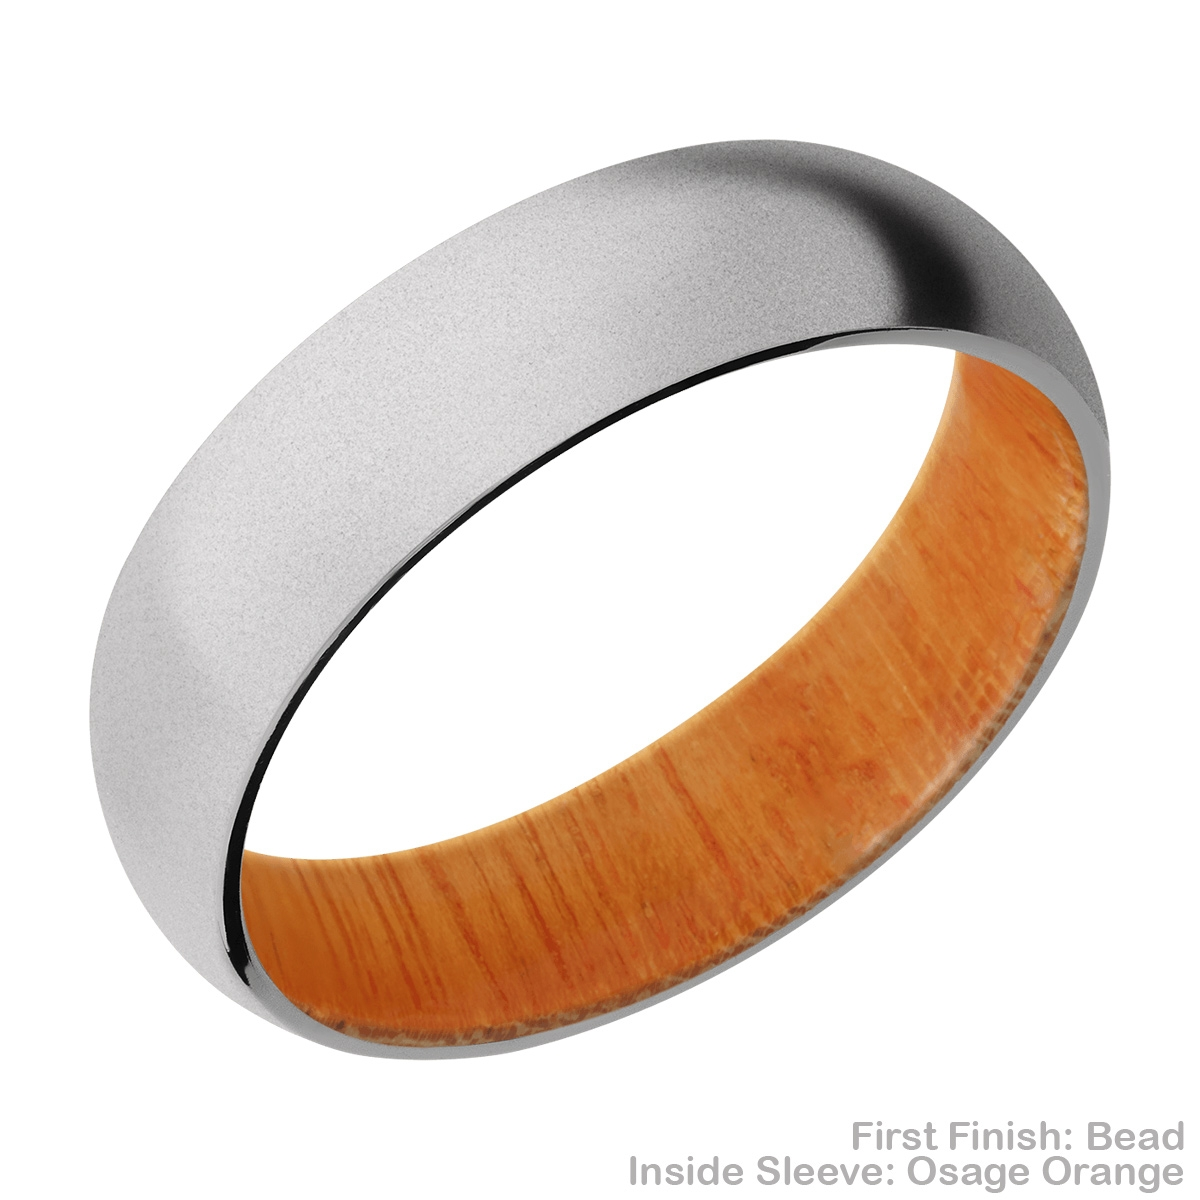 Lashbrook HWSLEEVECC6D Cobalt Chrome and Hardwood Wedding Ring or Band Alternative View 5